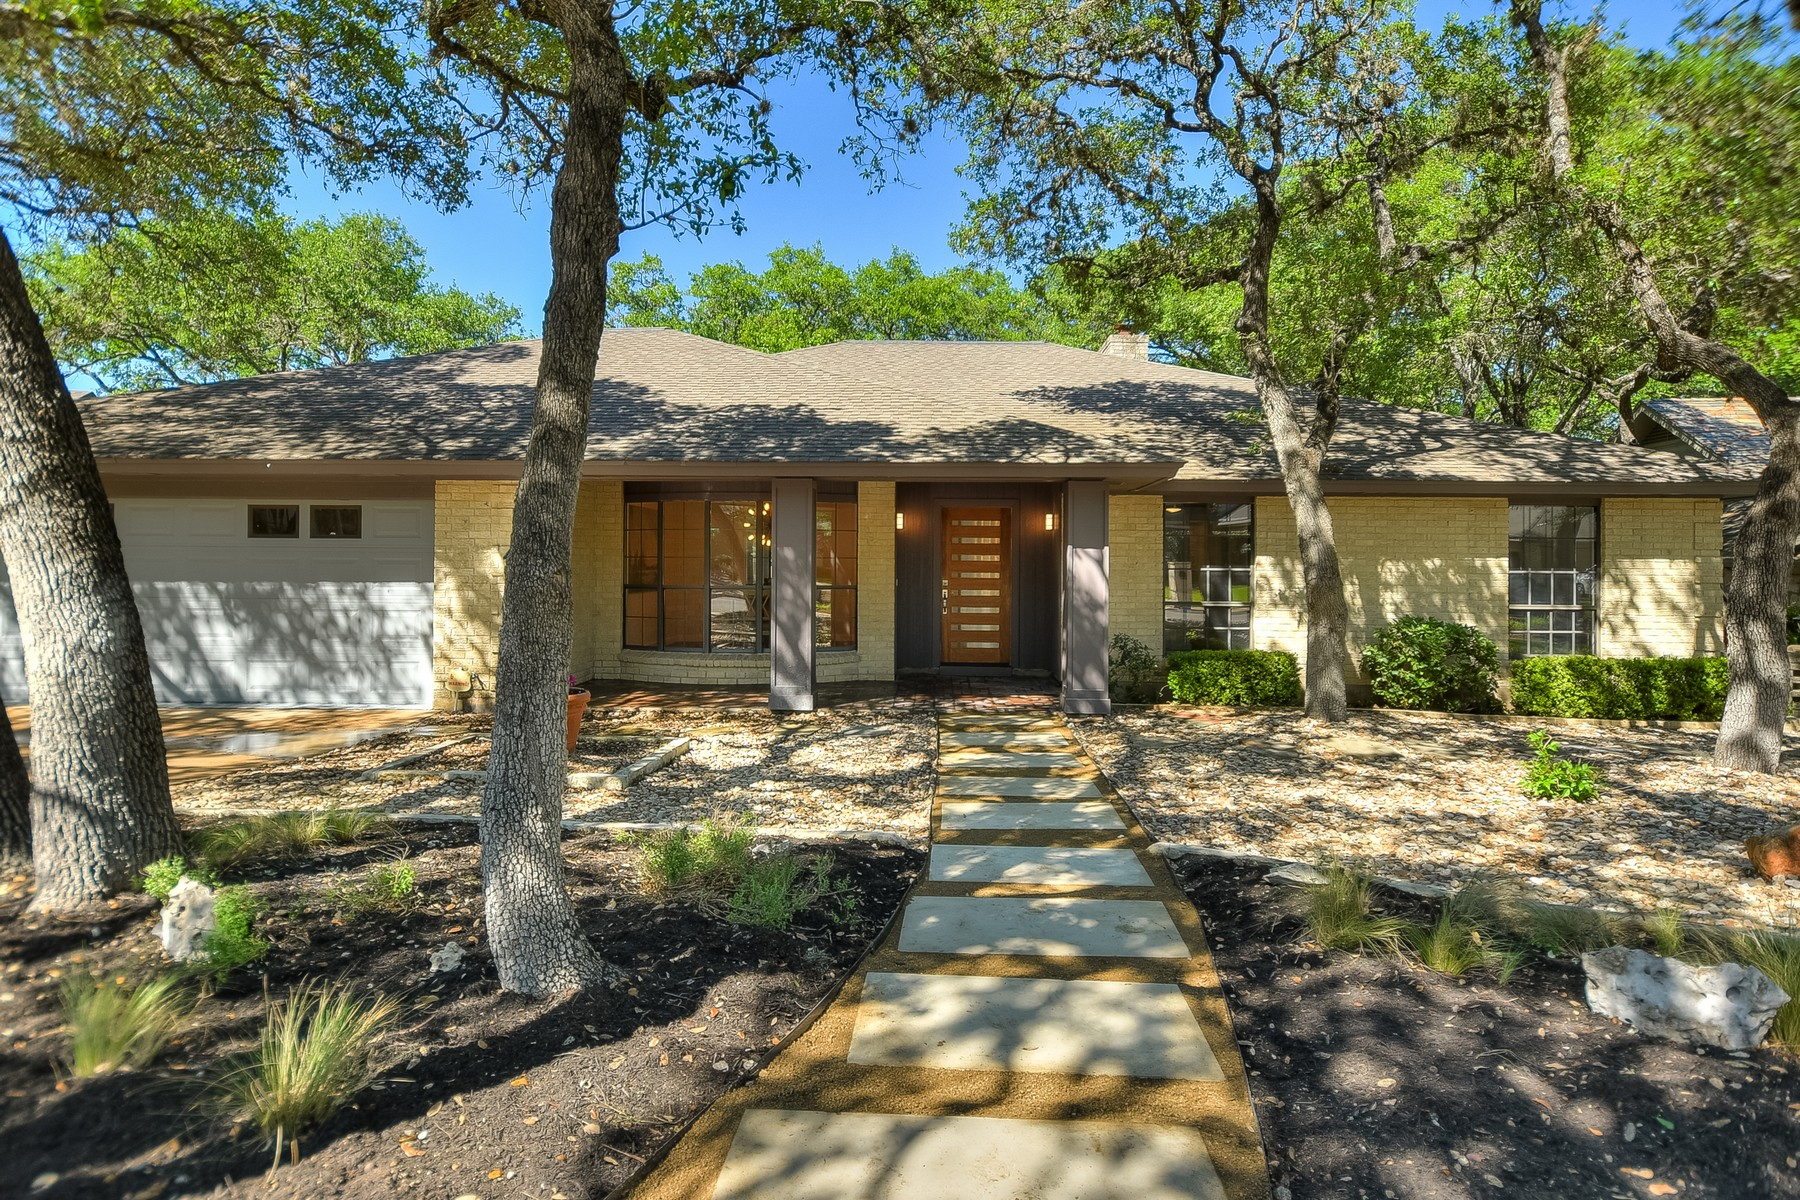 Single Family Home for Sale at Stylish Renovation with an Urban Flair 3802 N Green Trl Austin, Texas, 78759 United States